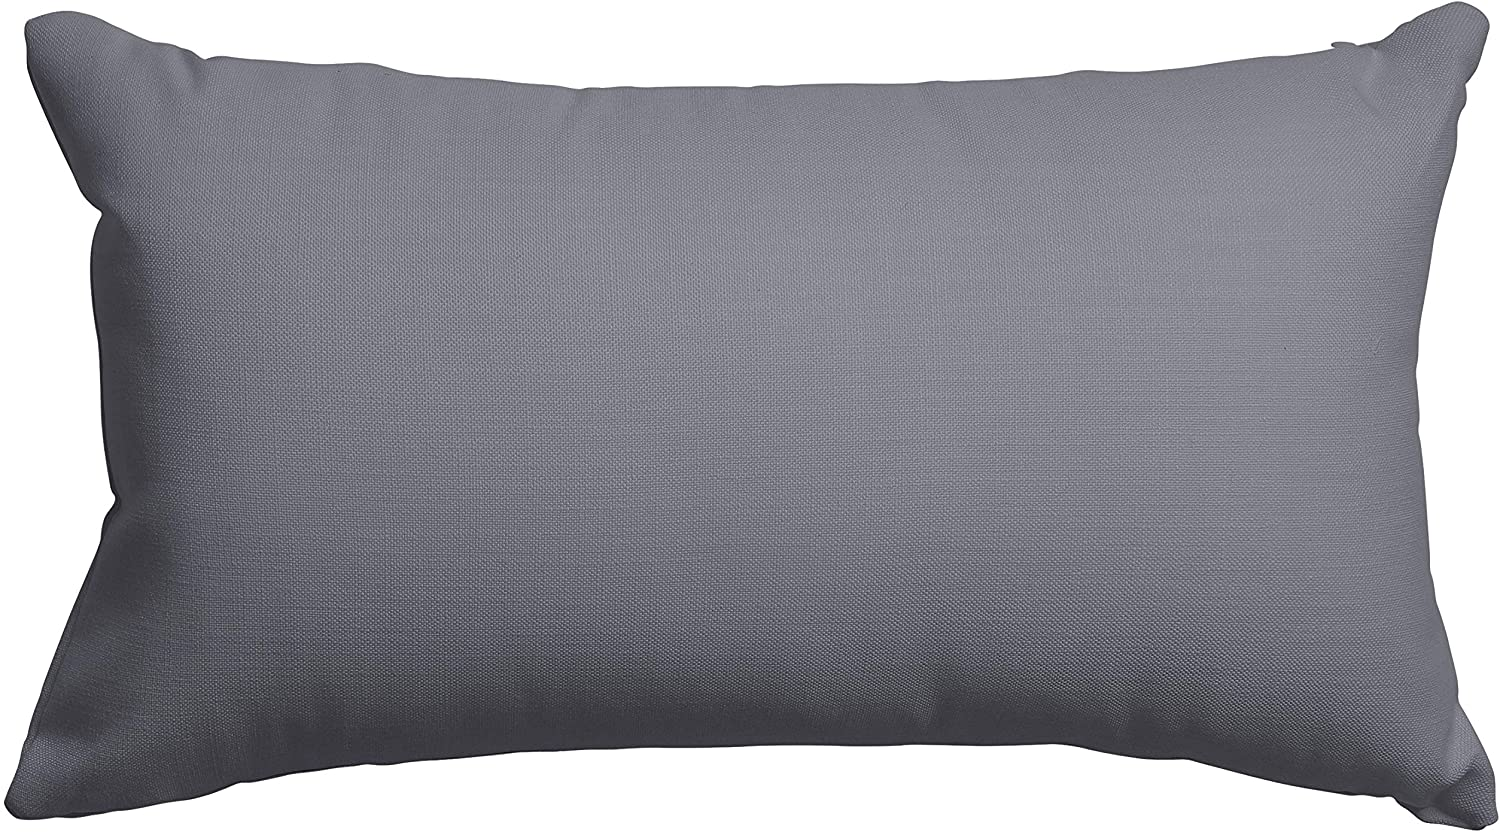 Majestic Home Goods Gray Solid Indoor / Outdoor Small Throw Pillow 20